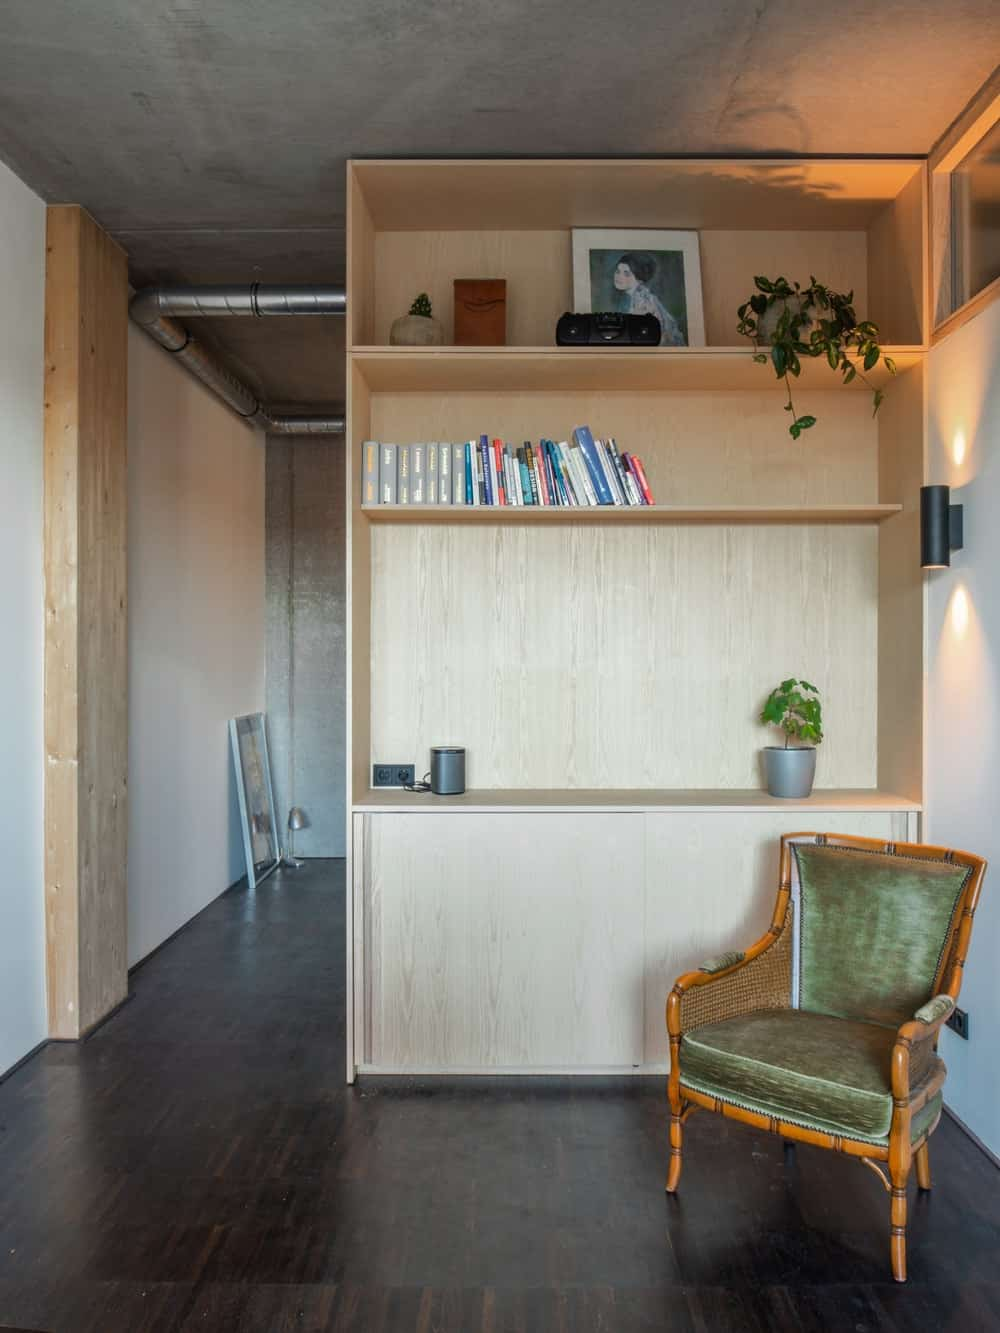 This is a library corner of the house with a comfortable armchair that is perfect as a reading nook by the wooden bookshelves.